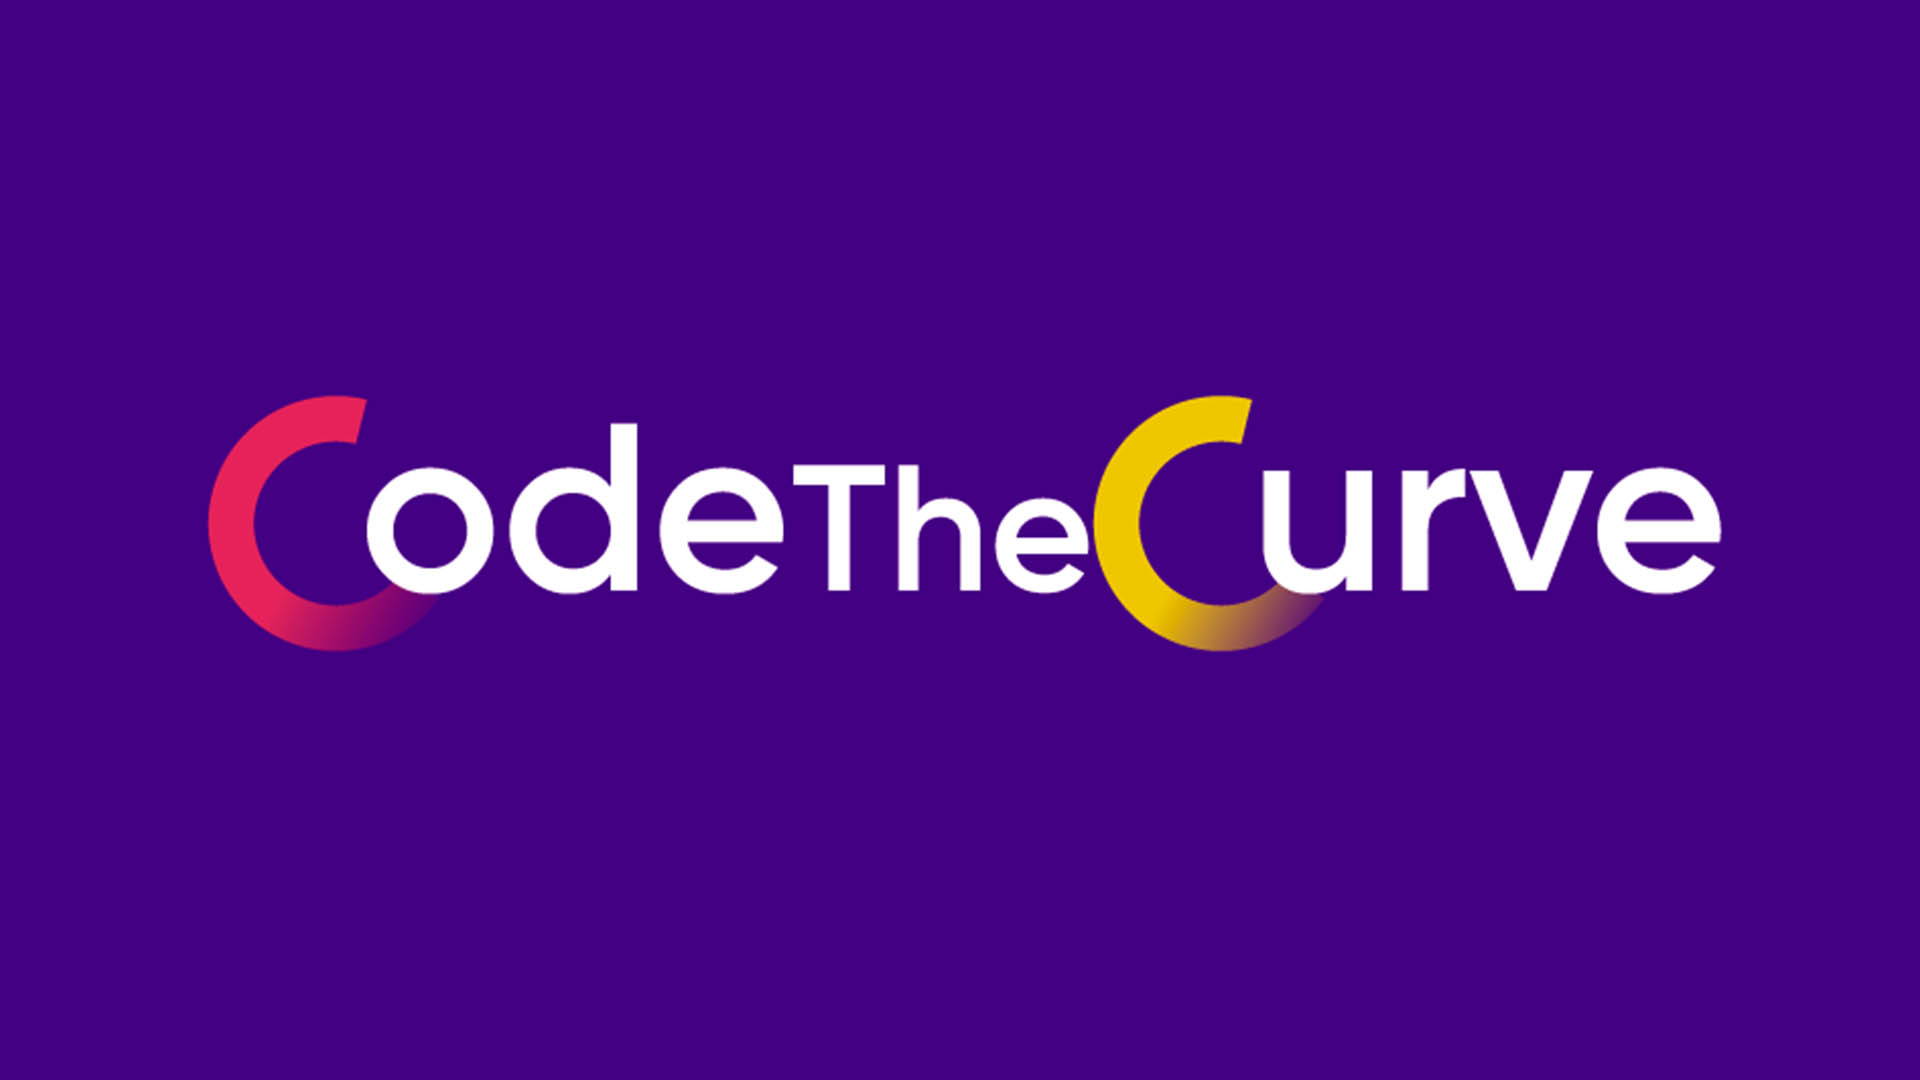 """CodeTheCurve"" against a dark purple background"